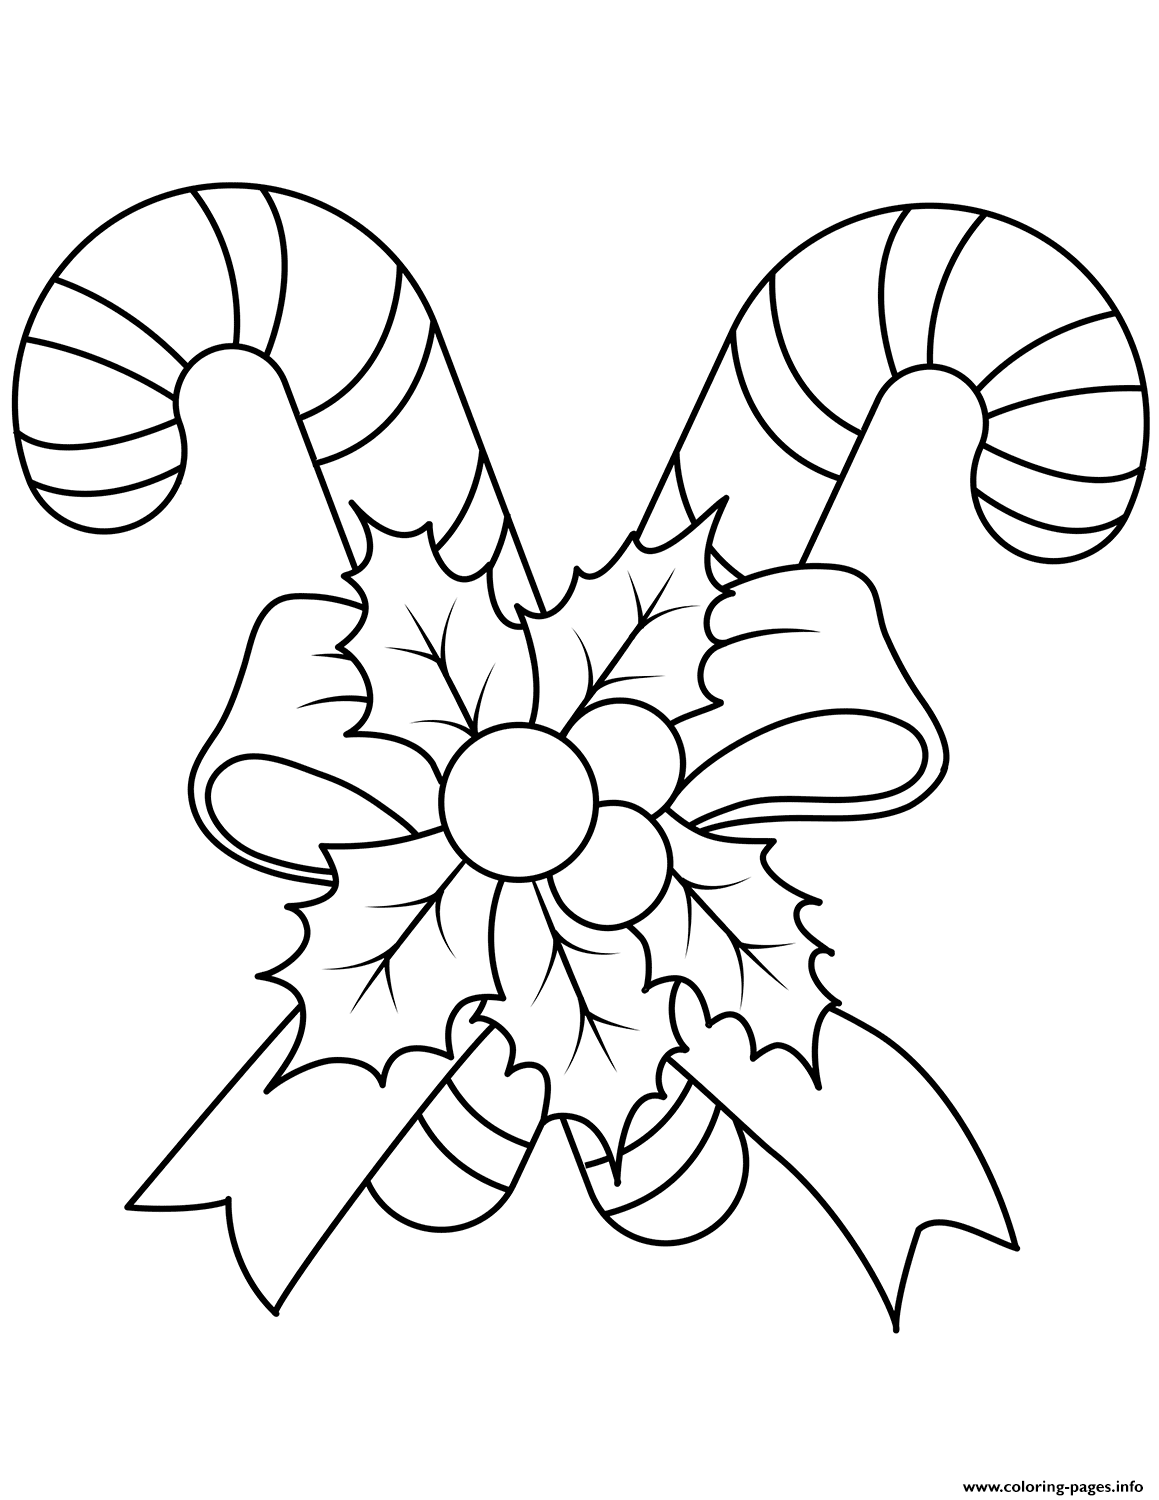 candy cane coloring page free printable candy cane coloring pages for kids cool2bkids coloring cane candy page